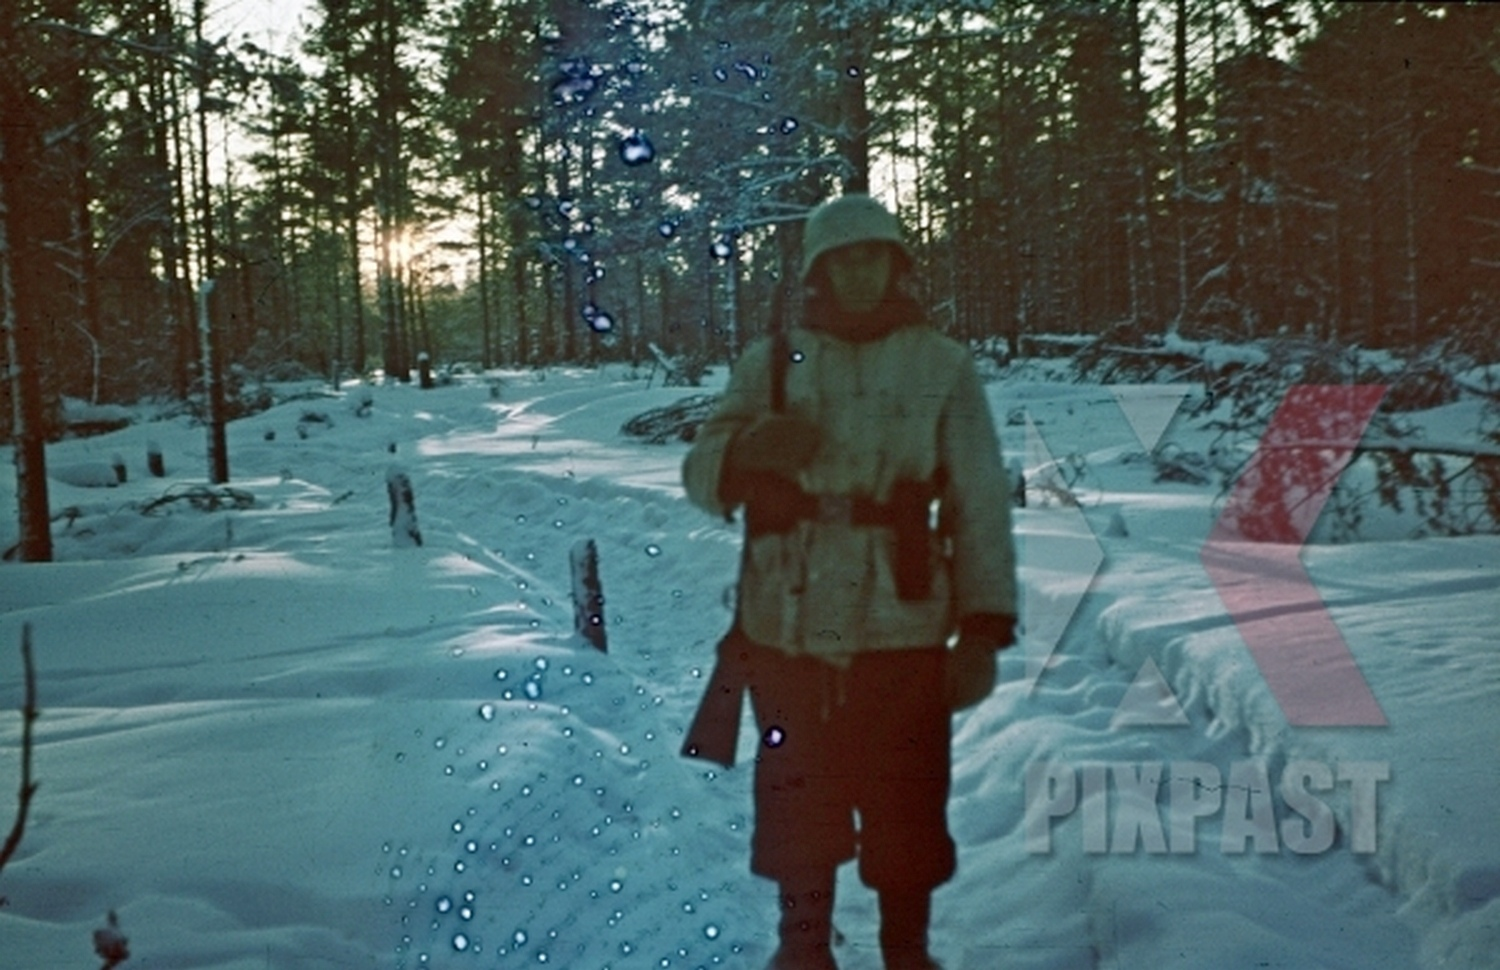 Original war photos in color from the album of a Wehrmacht soldier, winter 1942 on the Leningrad front.